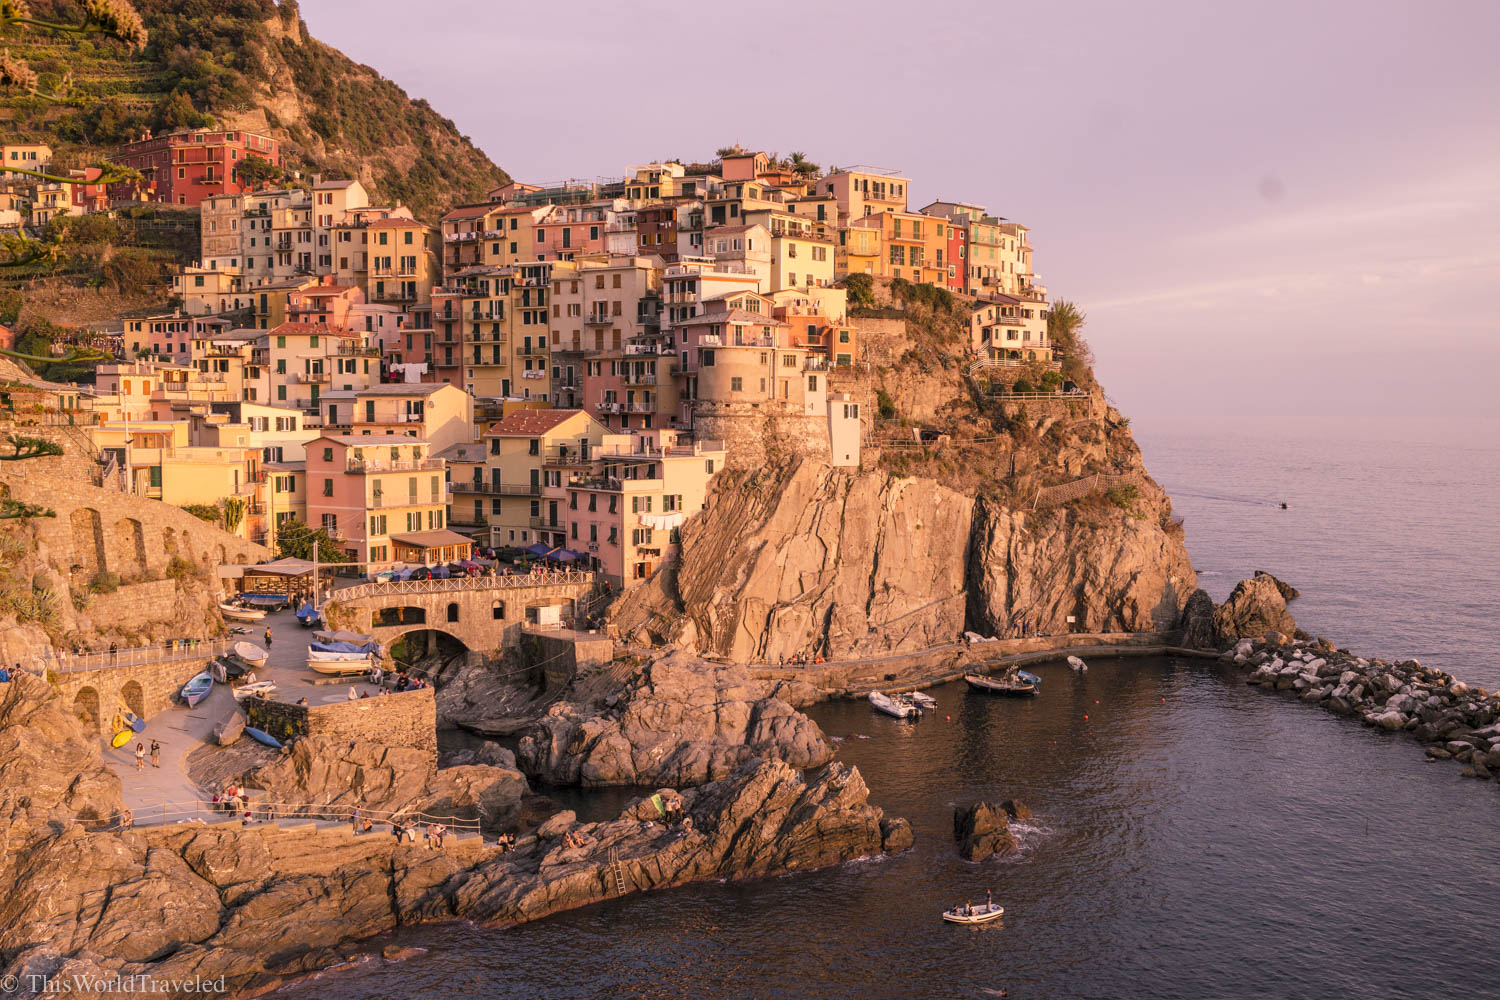 Cinque Terre: The Five Cliffside Villages of the Italian Riviera